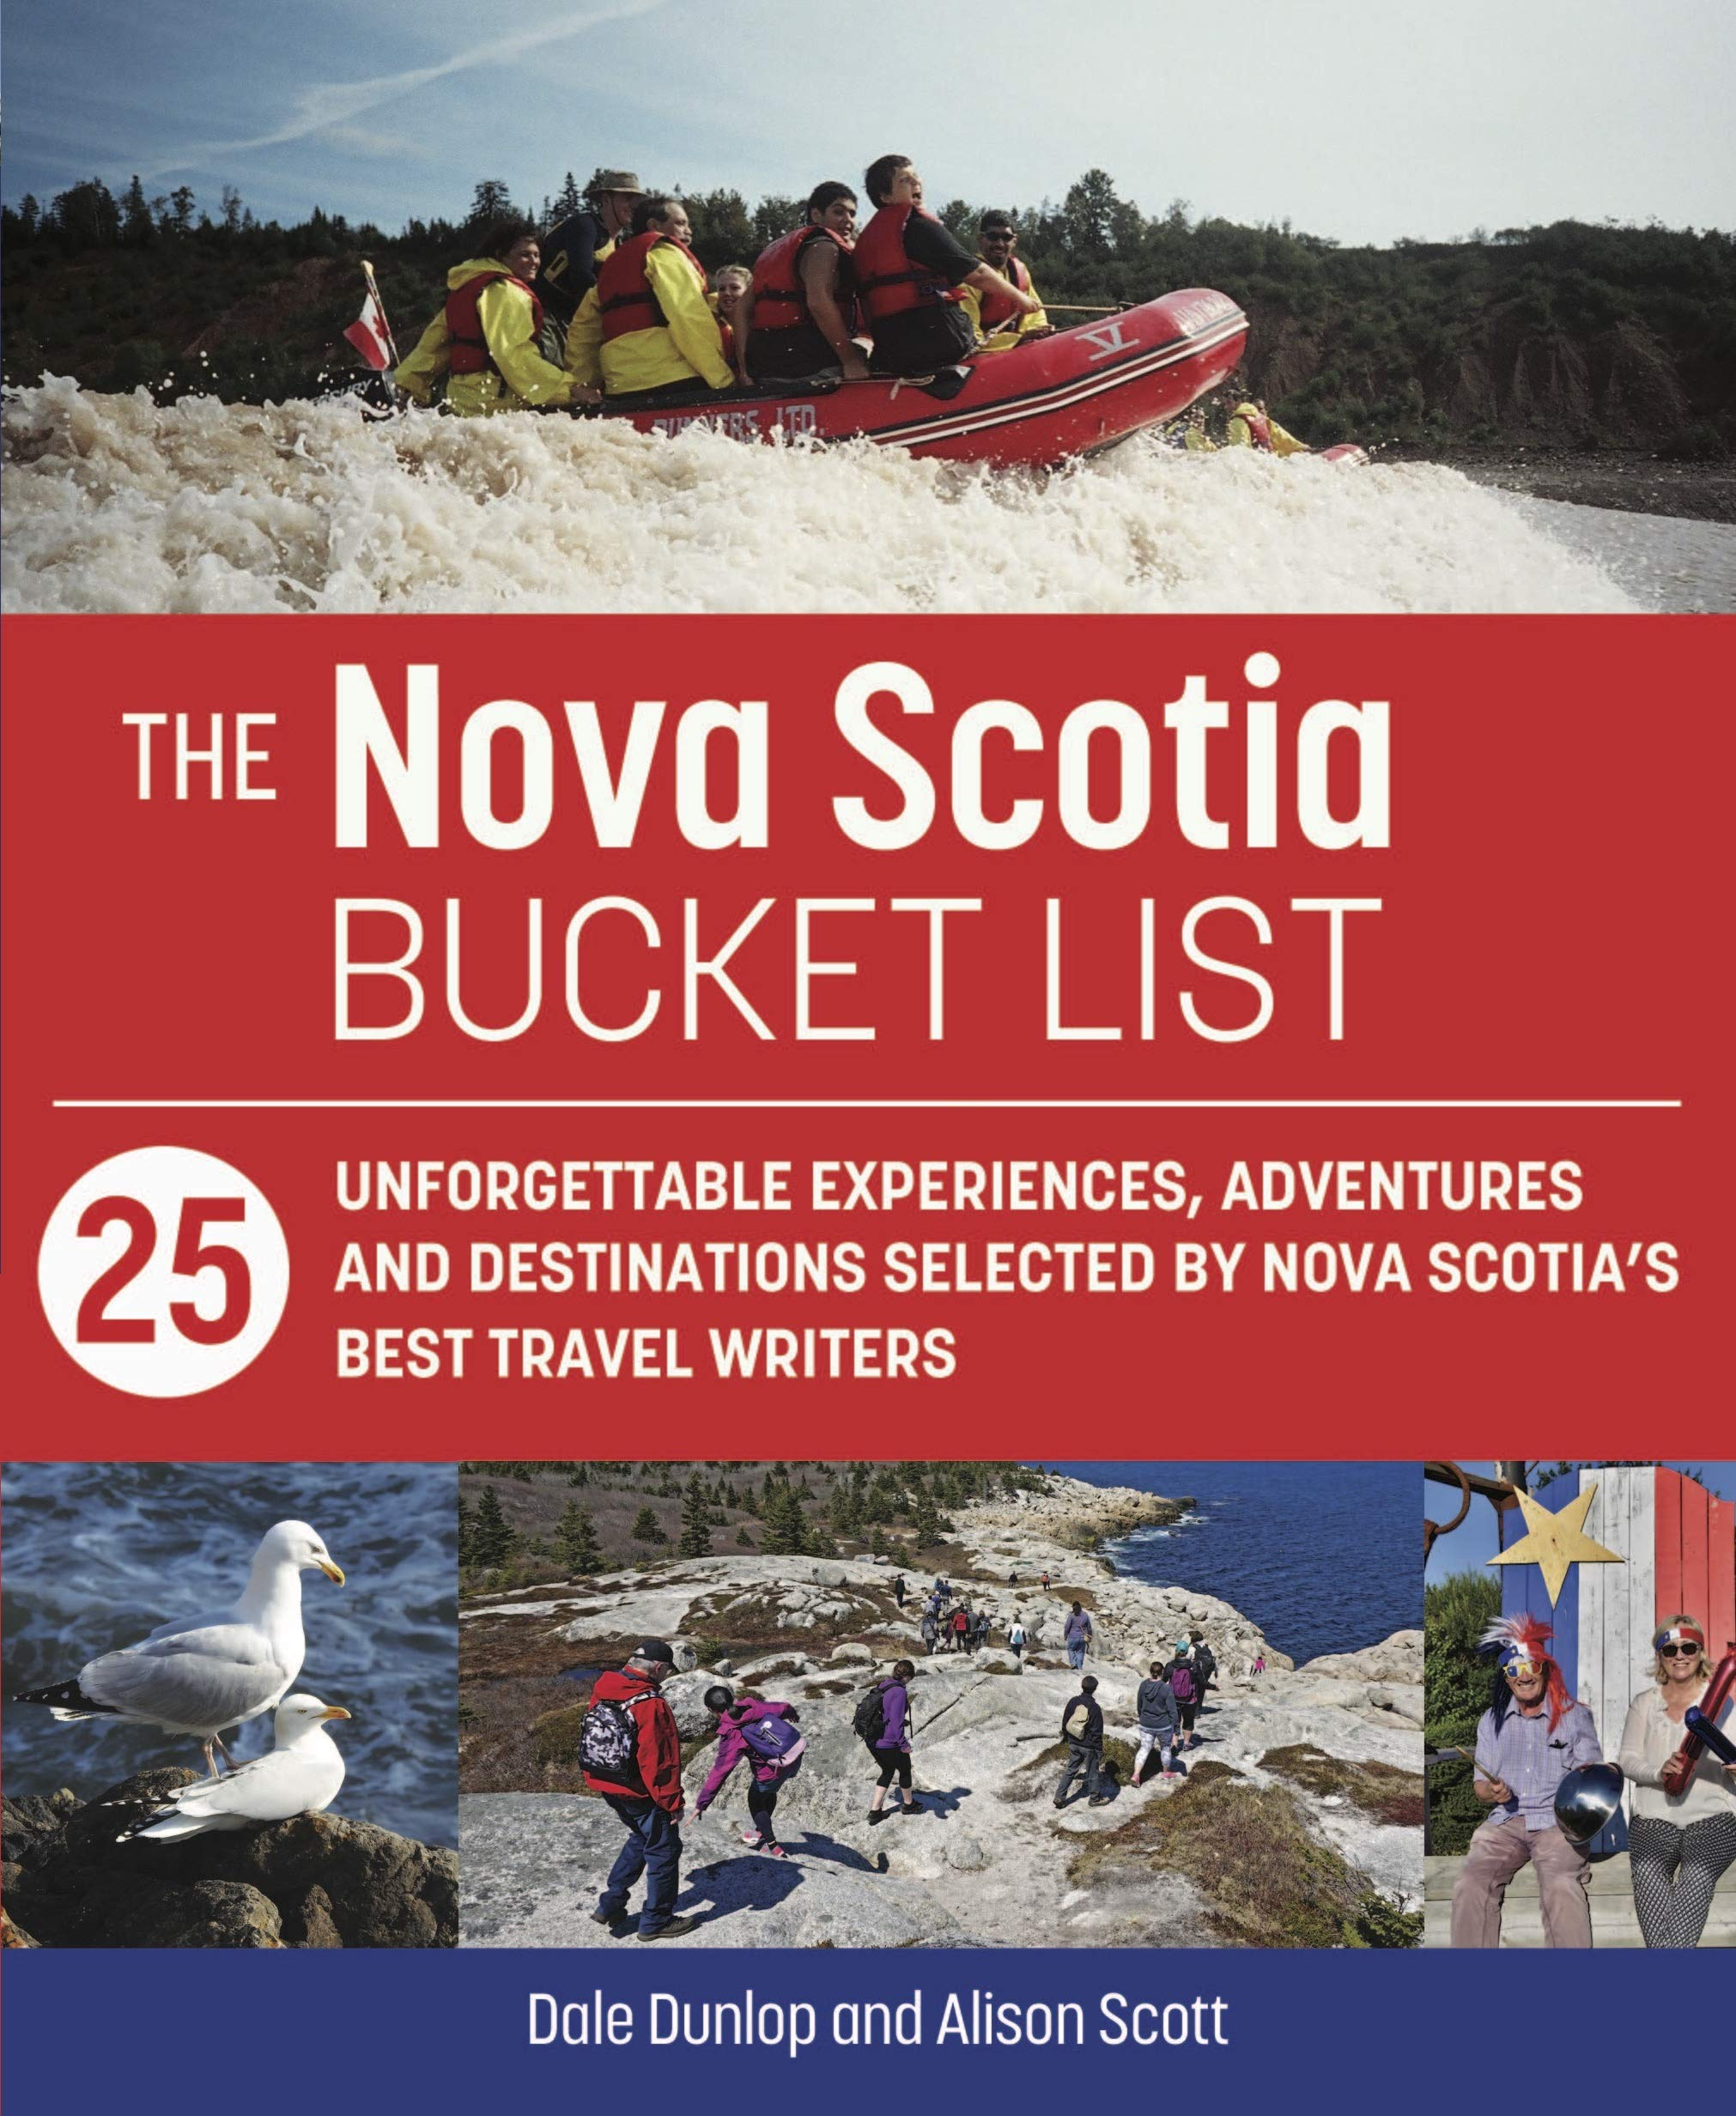 The Nova Scotia Bucket List